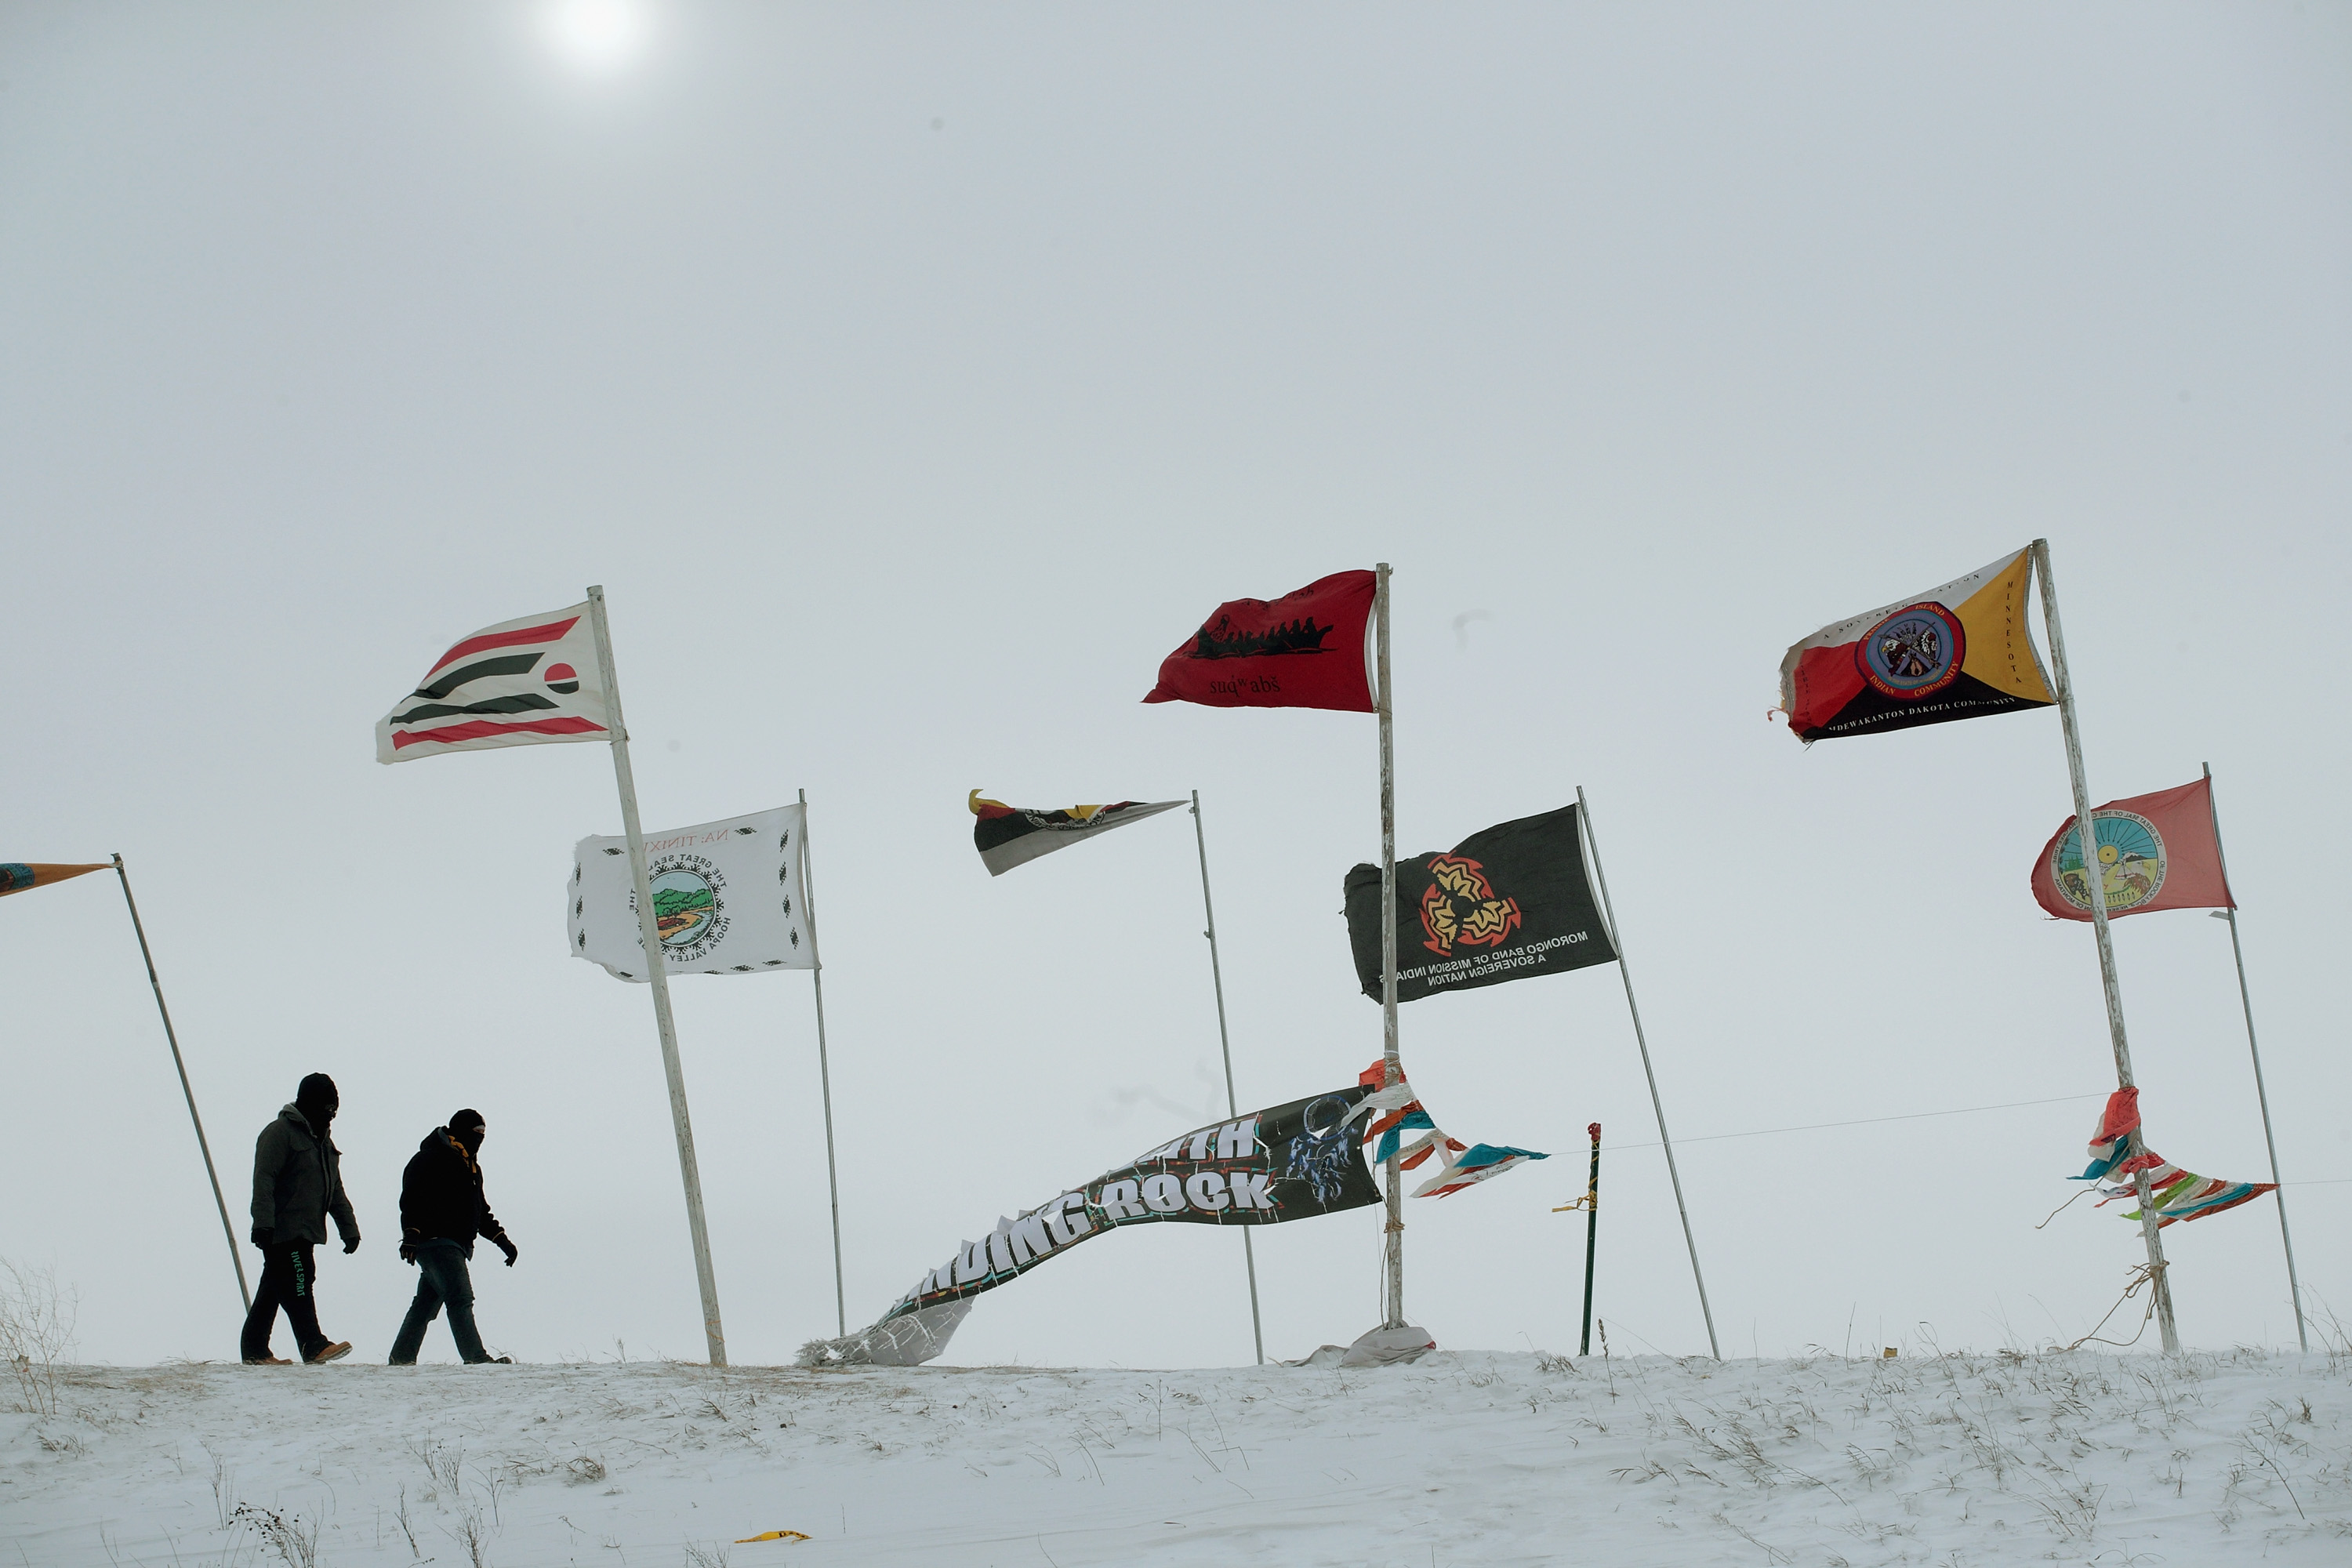 Activists fight the wind as they walk along Flag Road in Oceti Sakowin Camp as blizzard conditions grip the area around the Standing Rock Sioux Reservation on Dec. 6, 2016 outside Cannon Ball, North Dakota.